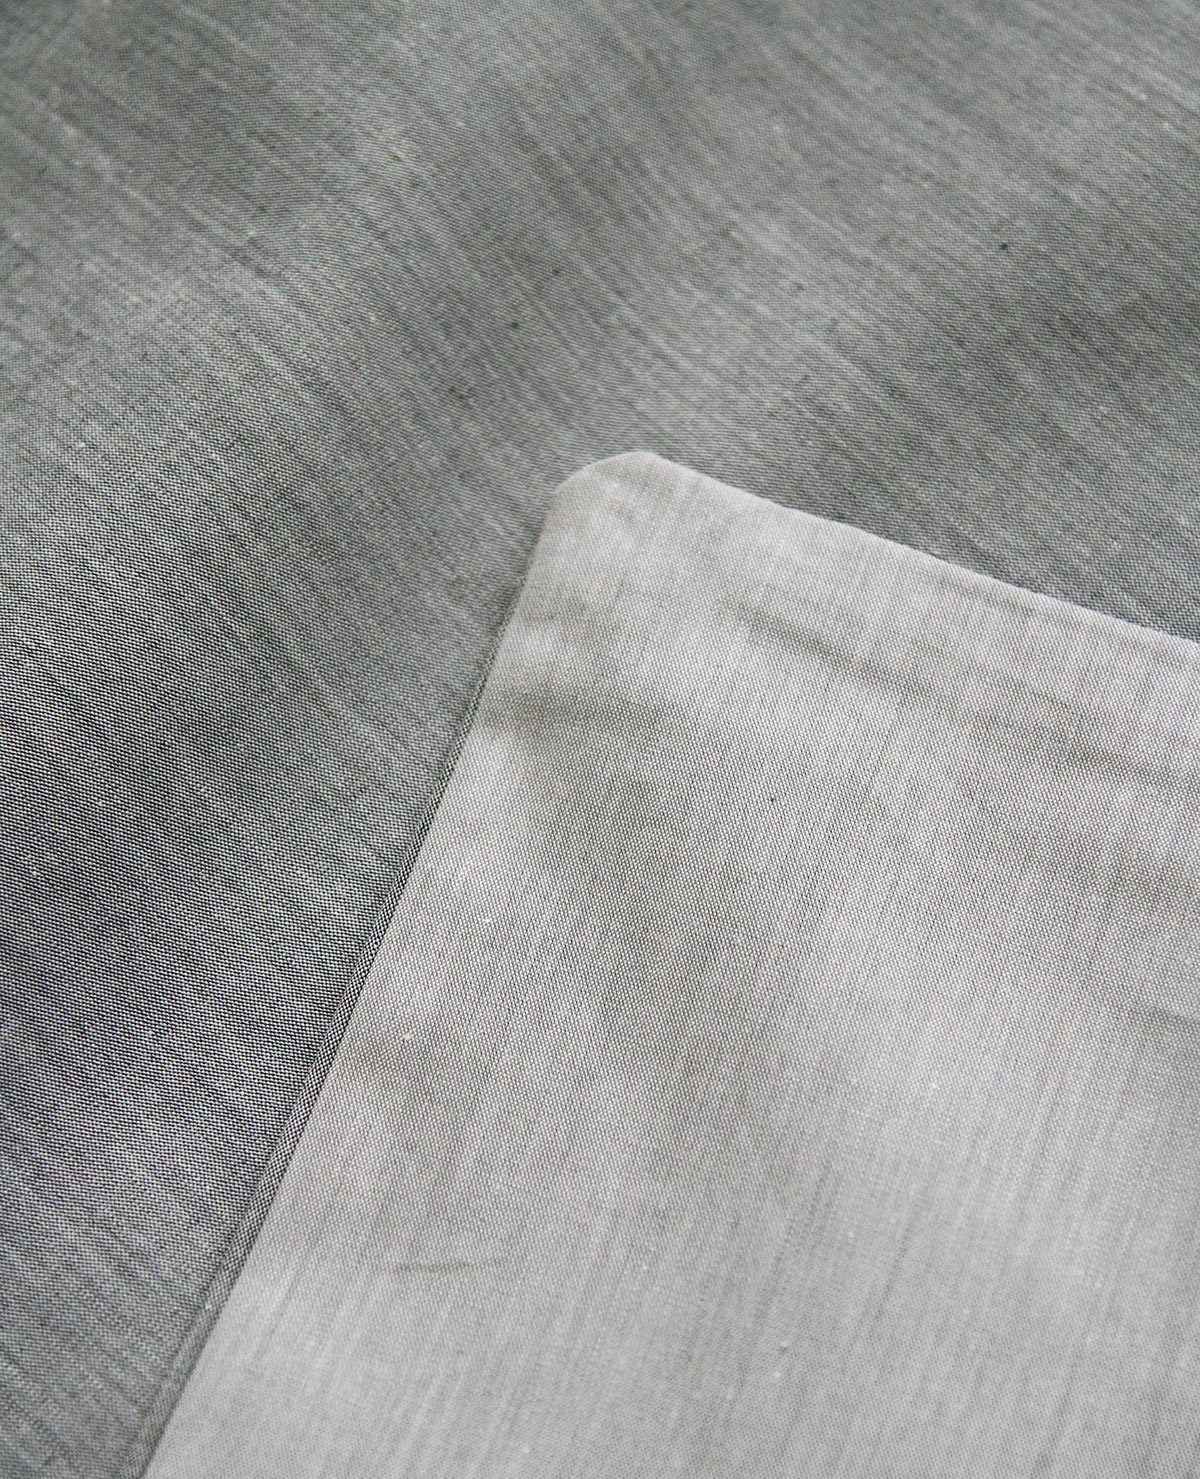 Chambray%20Grey%20and%20Charcoal